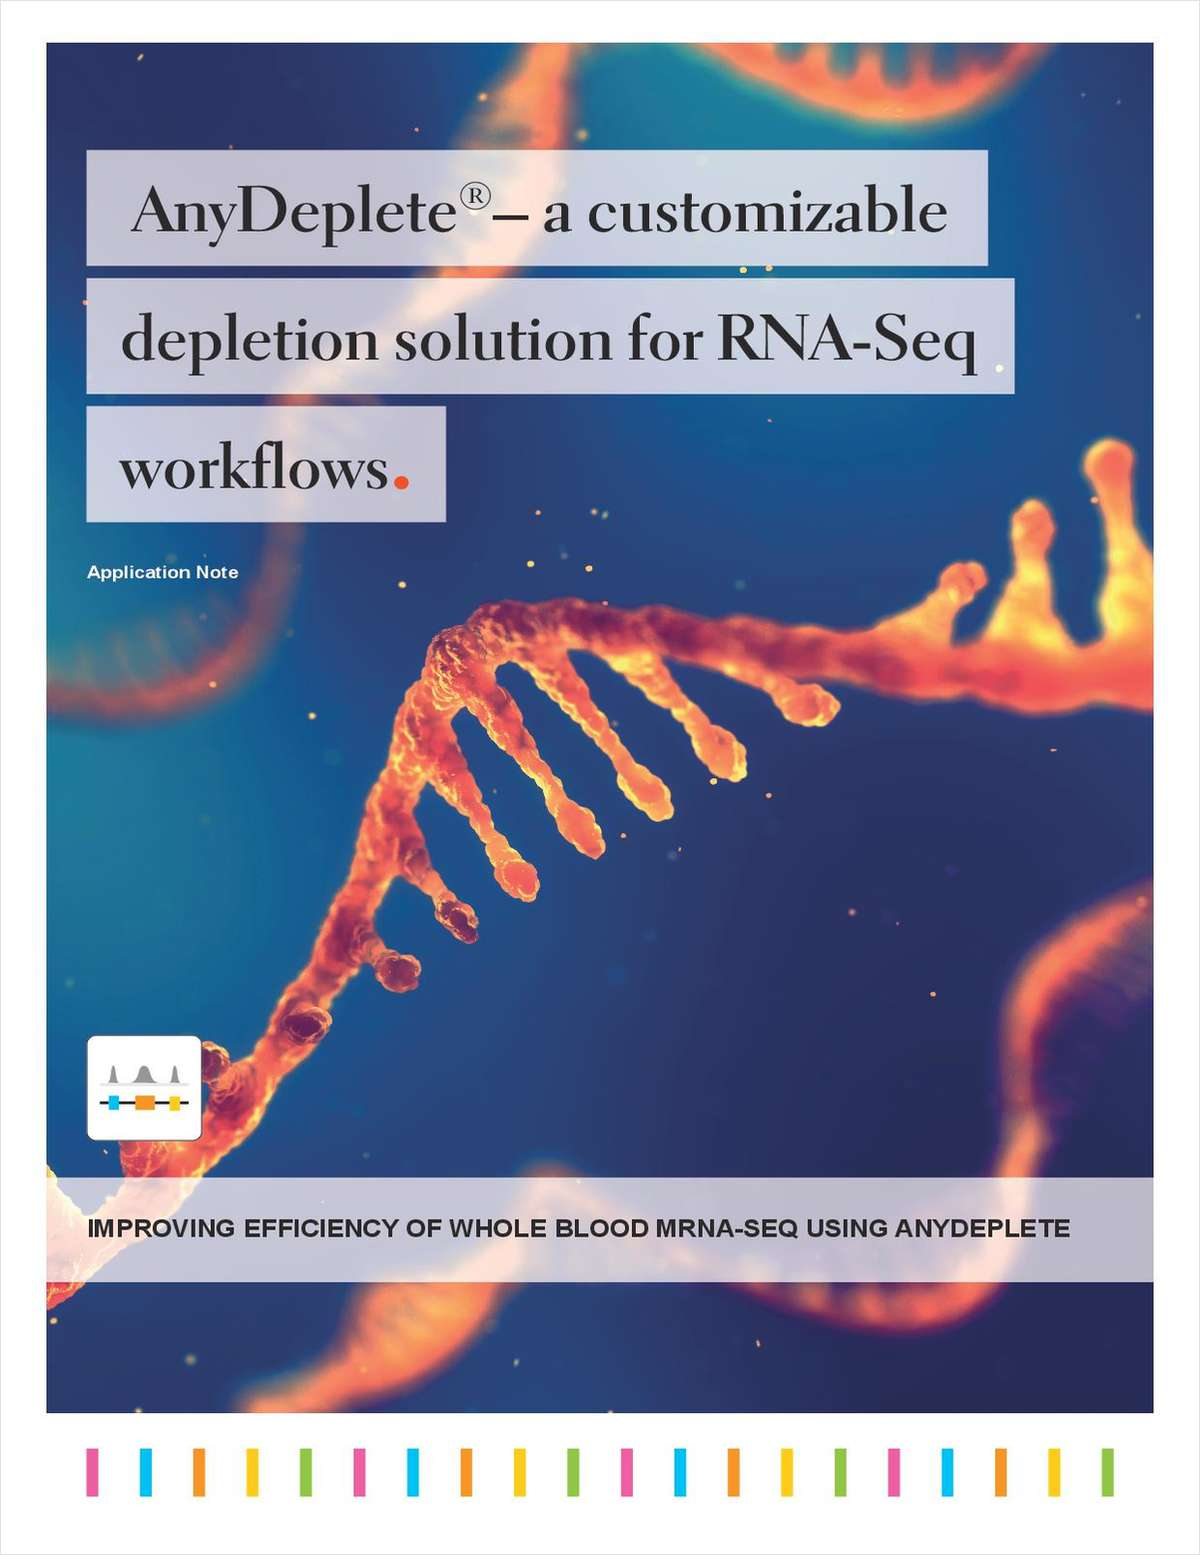 AnyDeplete - A customizable depletion solution for RNA-Seq workflows